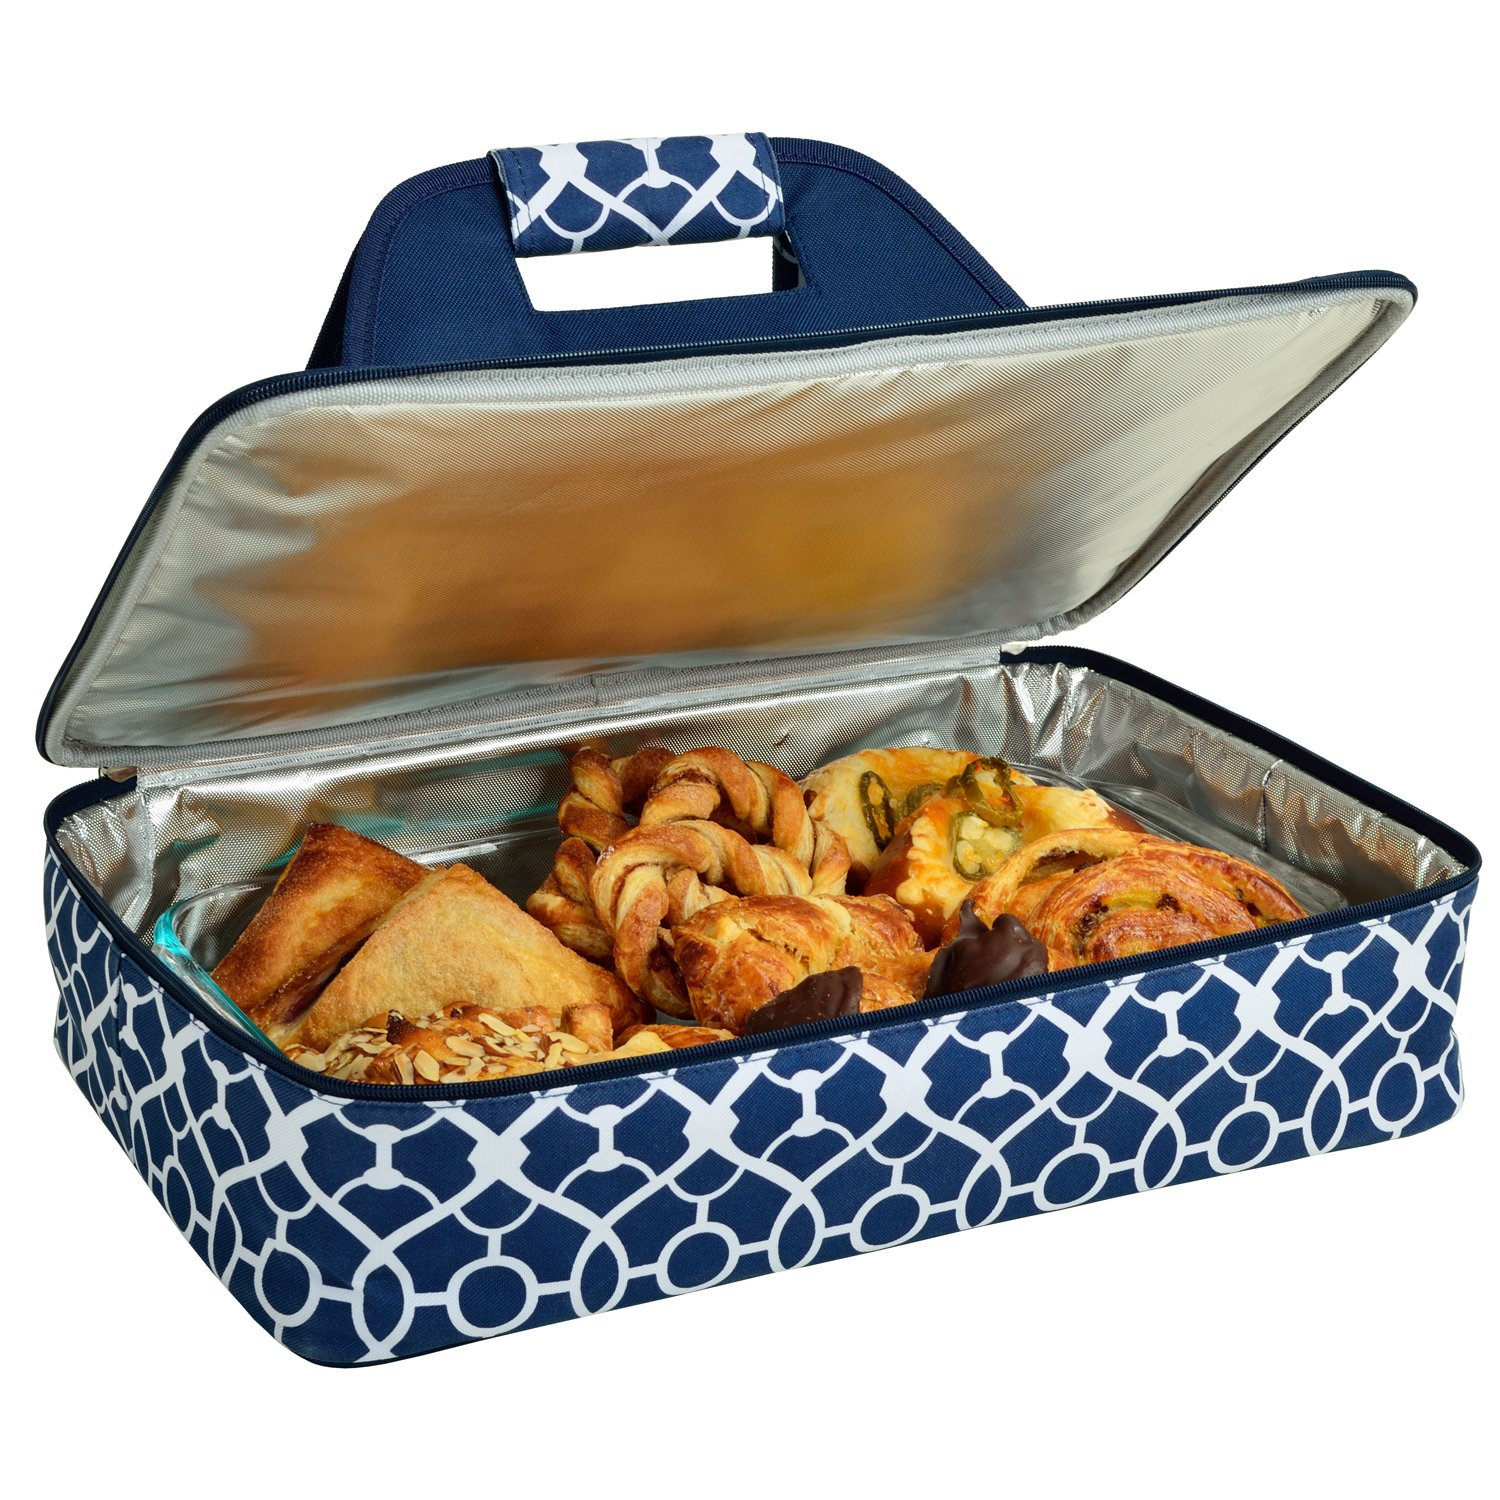 Picnic at Ascot Original Insulated Thermal Food & Casserole Carrier- keeps Food Hot or Cold- Fits 15'' x 10'' Casserole Dish- Designed & Quality Approved in the USA